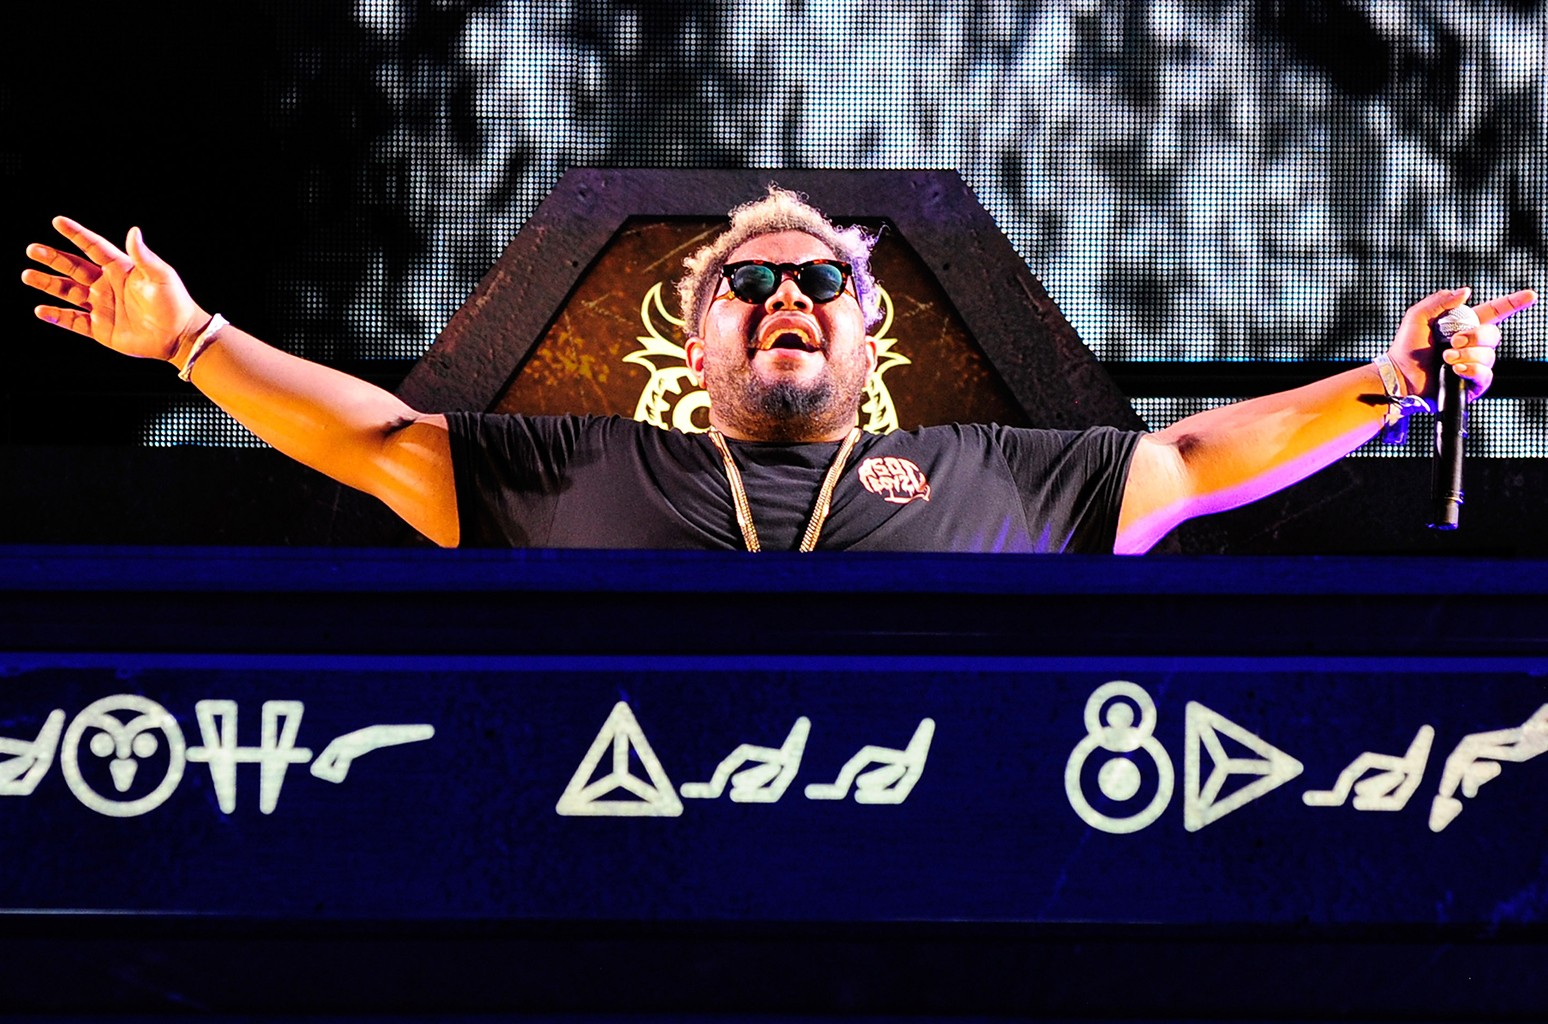 DJ Carnage performs during the 20th annual Electric Daisy Carnival at Las Vegas Motor Speedway on June 19, 2016 in Las Vegas.